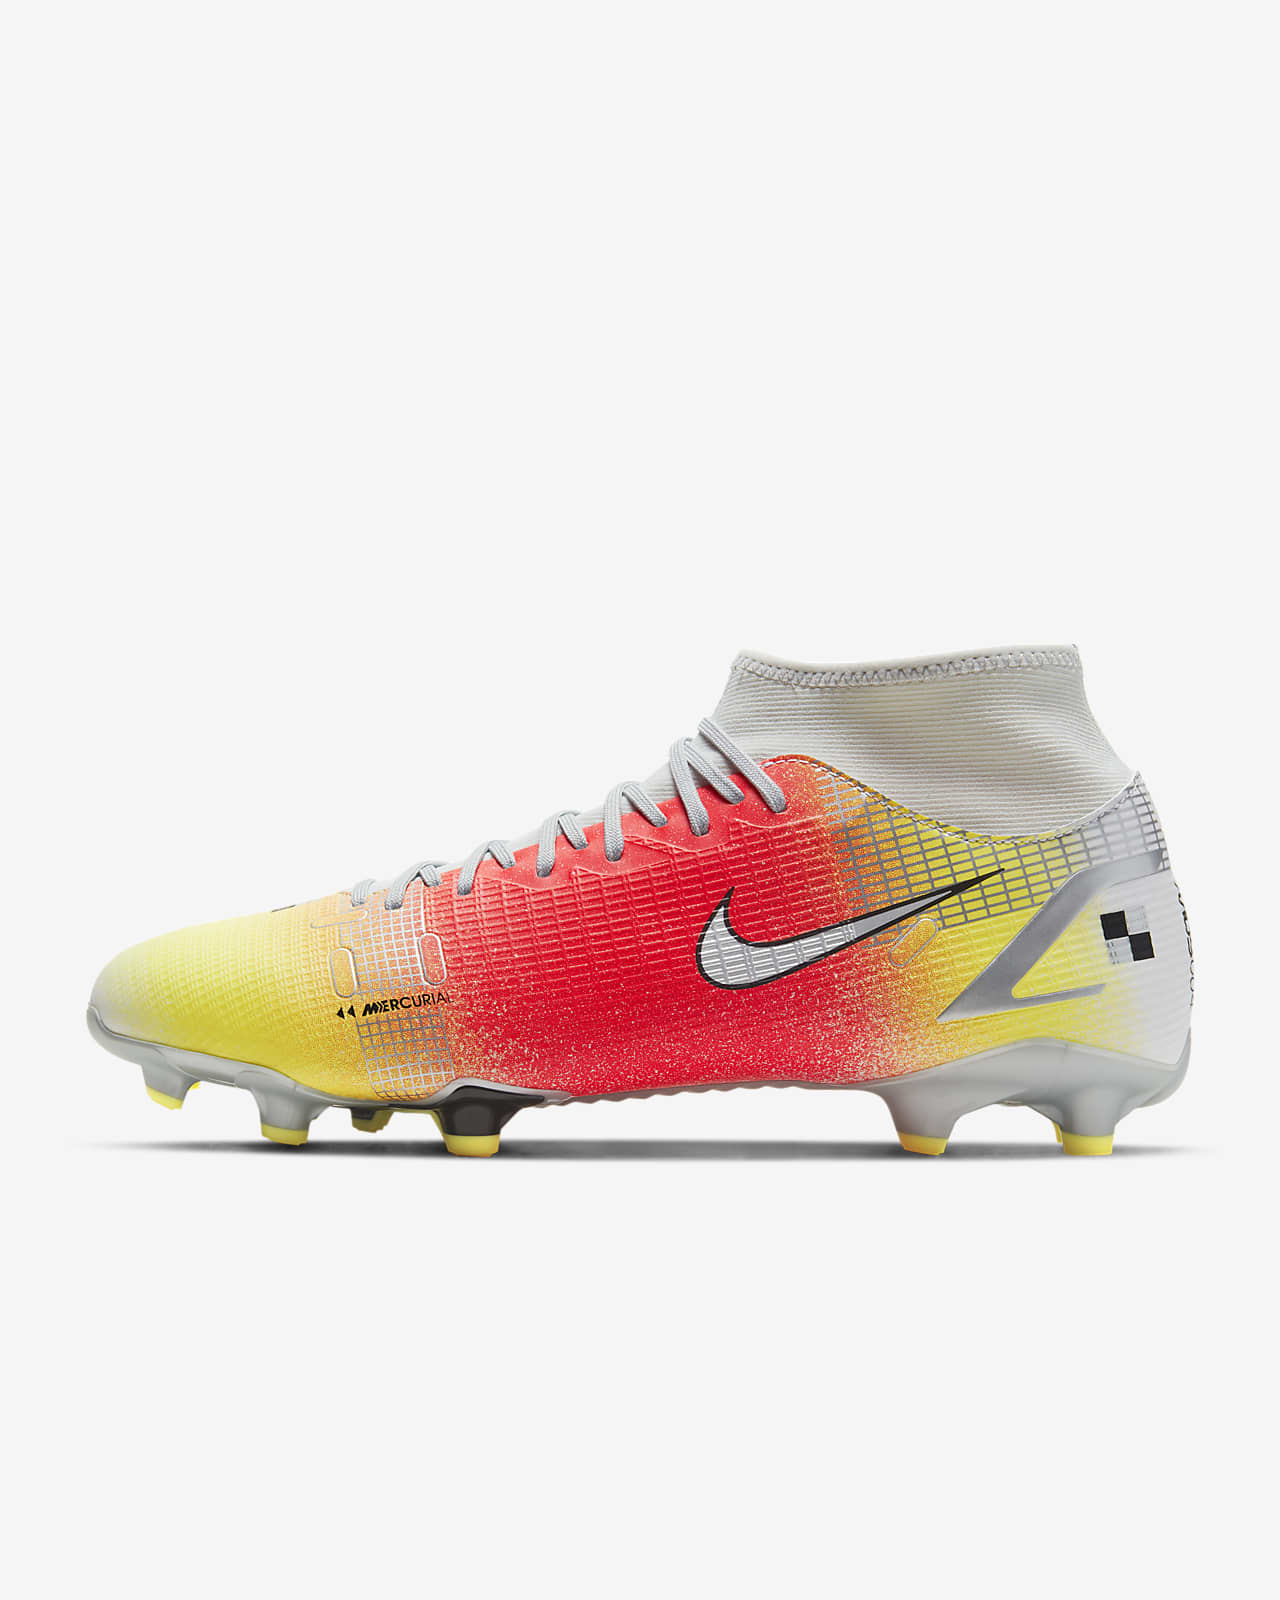 Chaussure de football multi-surfaces à crampons Nike Mercurial Dream Speed Superfly 8 Academy MG